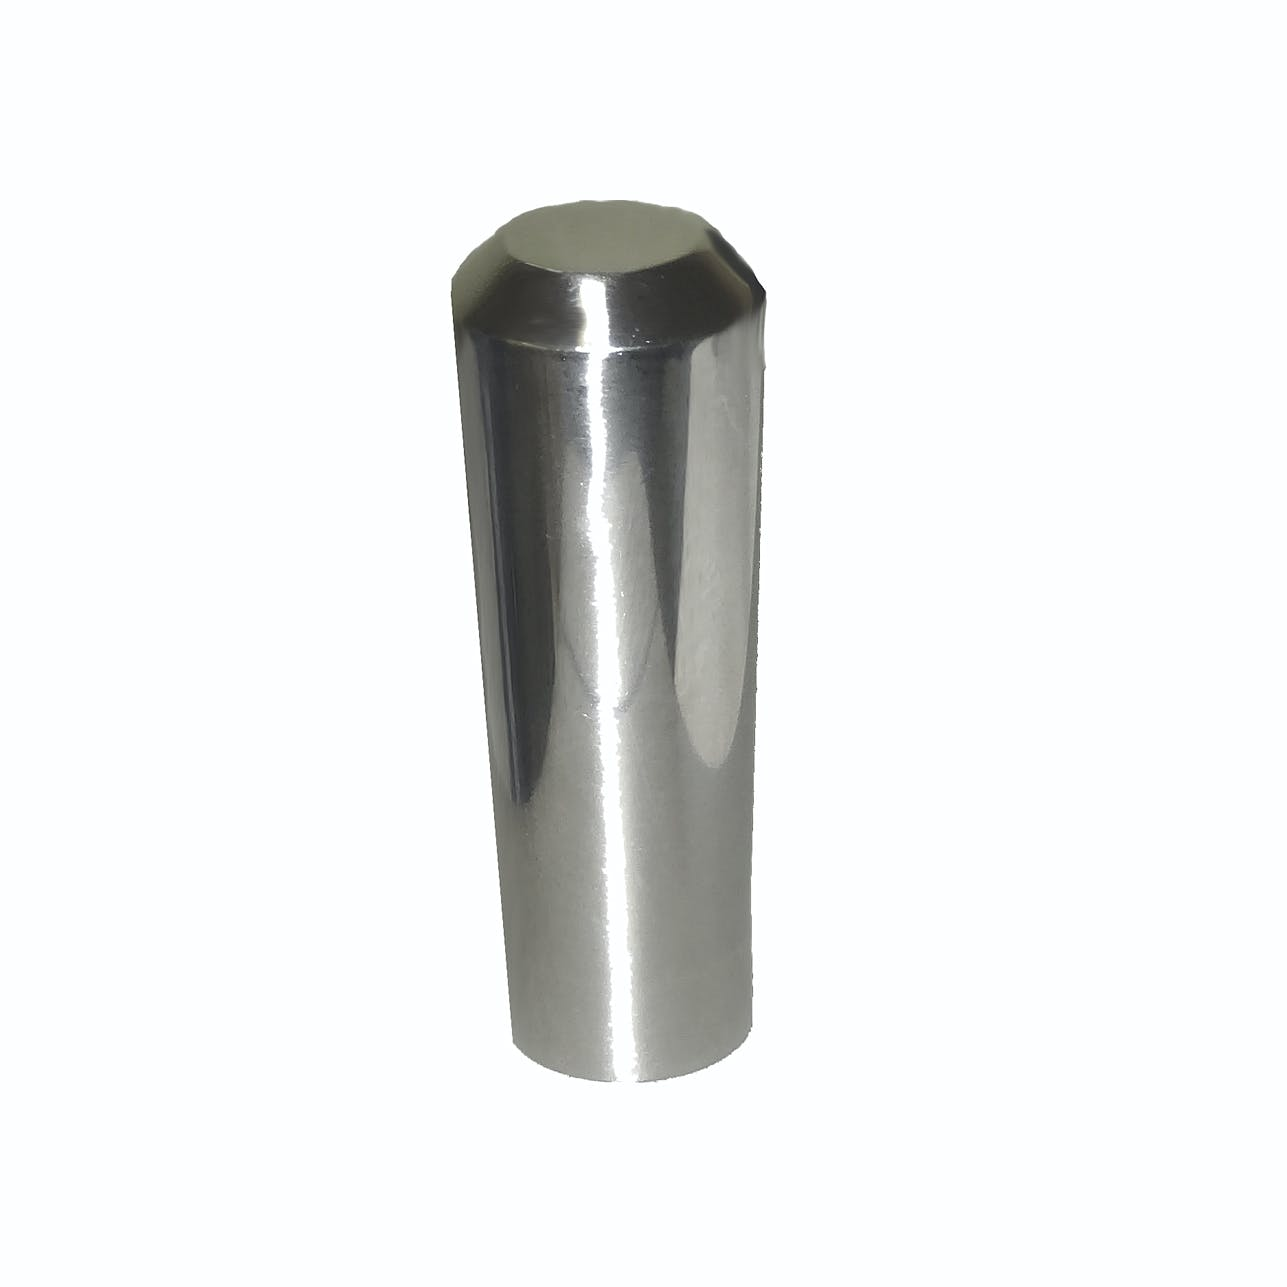 Stainless Steel Tap Handle Tap handle sold by Draft Warehouse